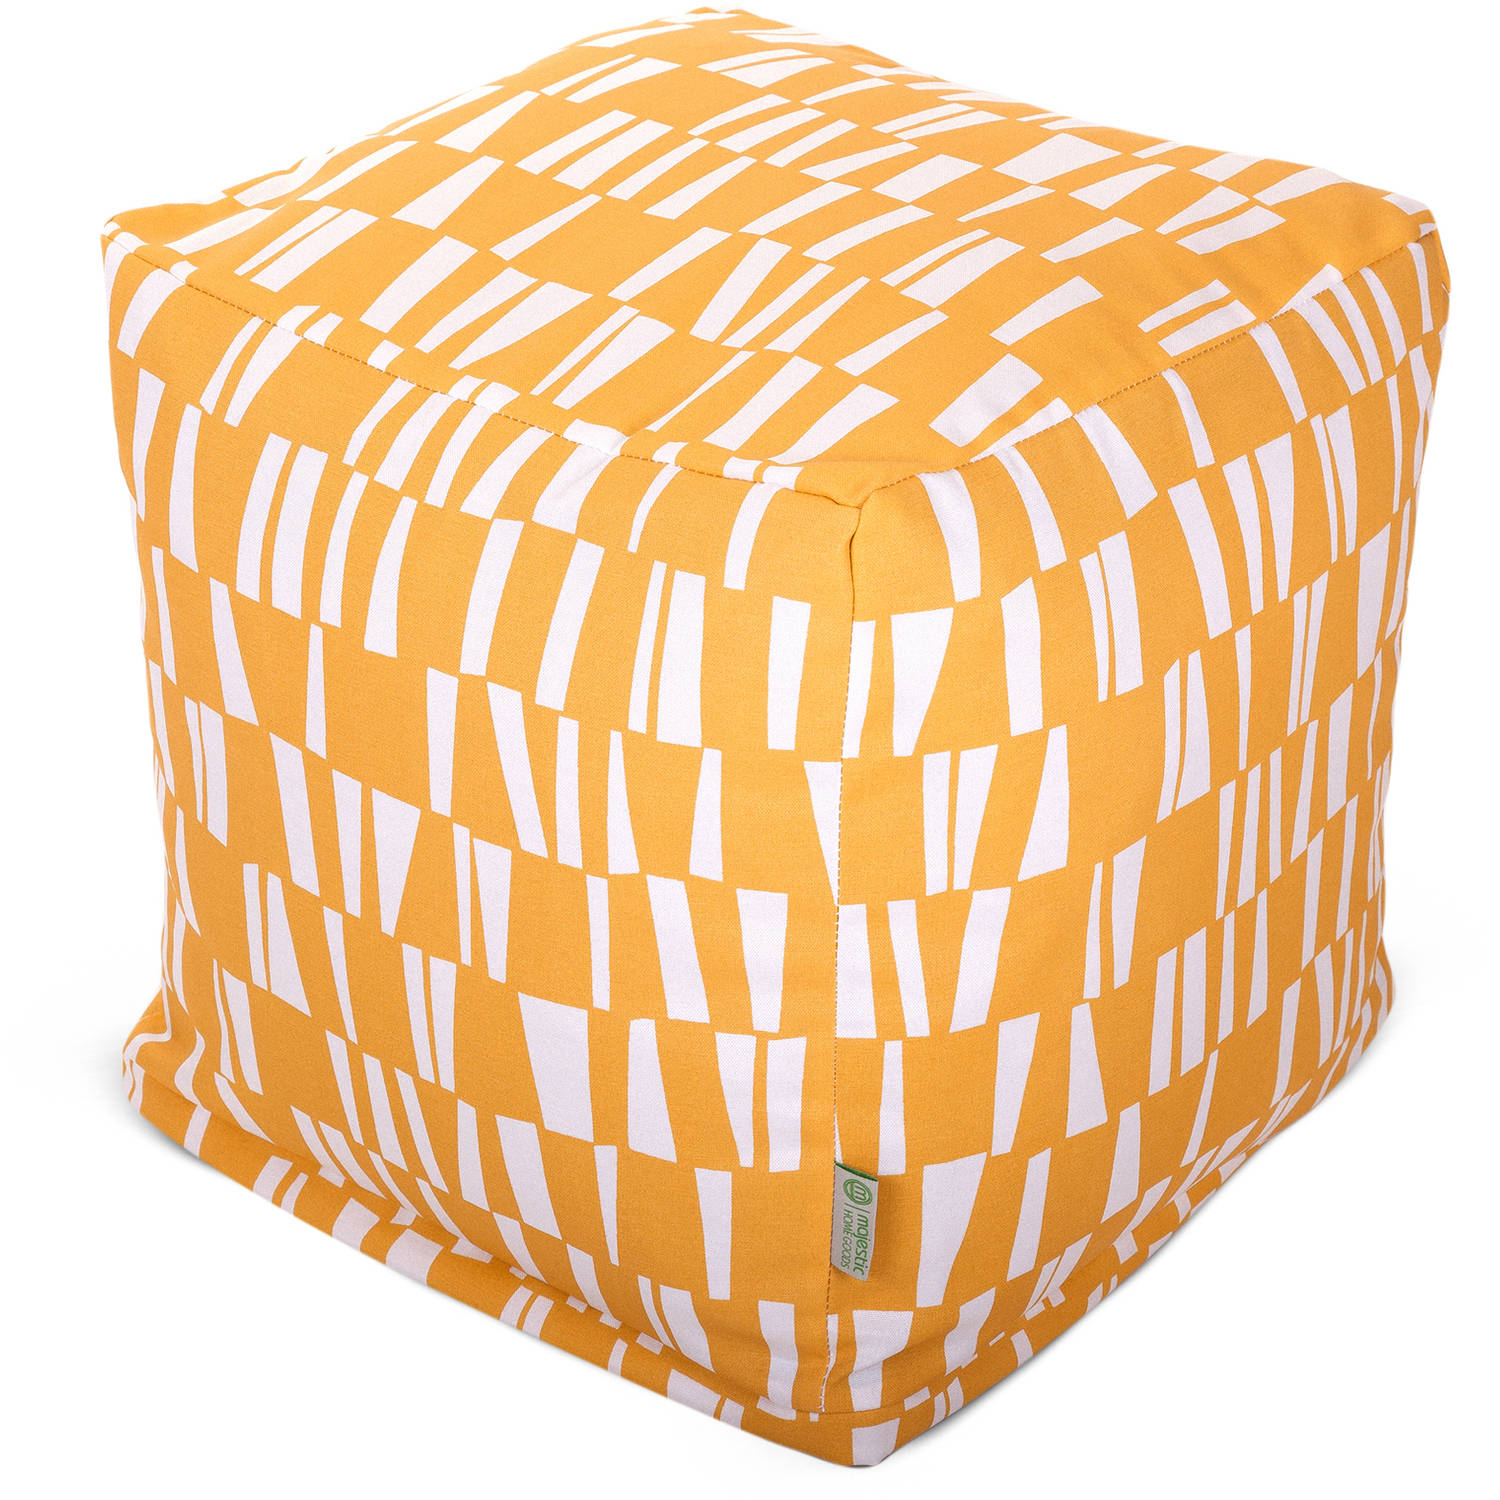 Majestic Home Goods Citrus Sticks Bean Bag Cube, Indoor/Outdoor